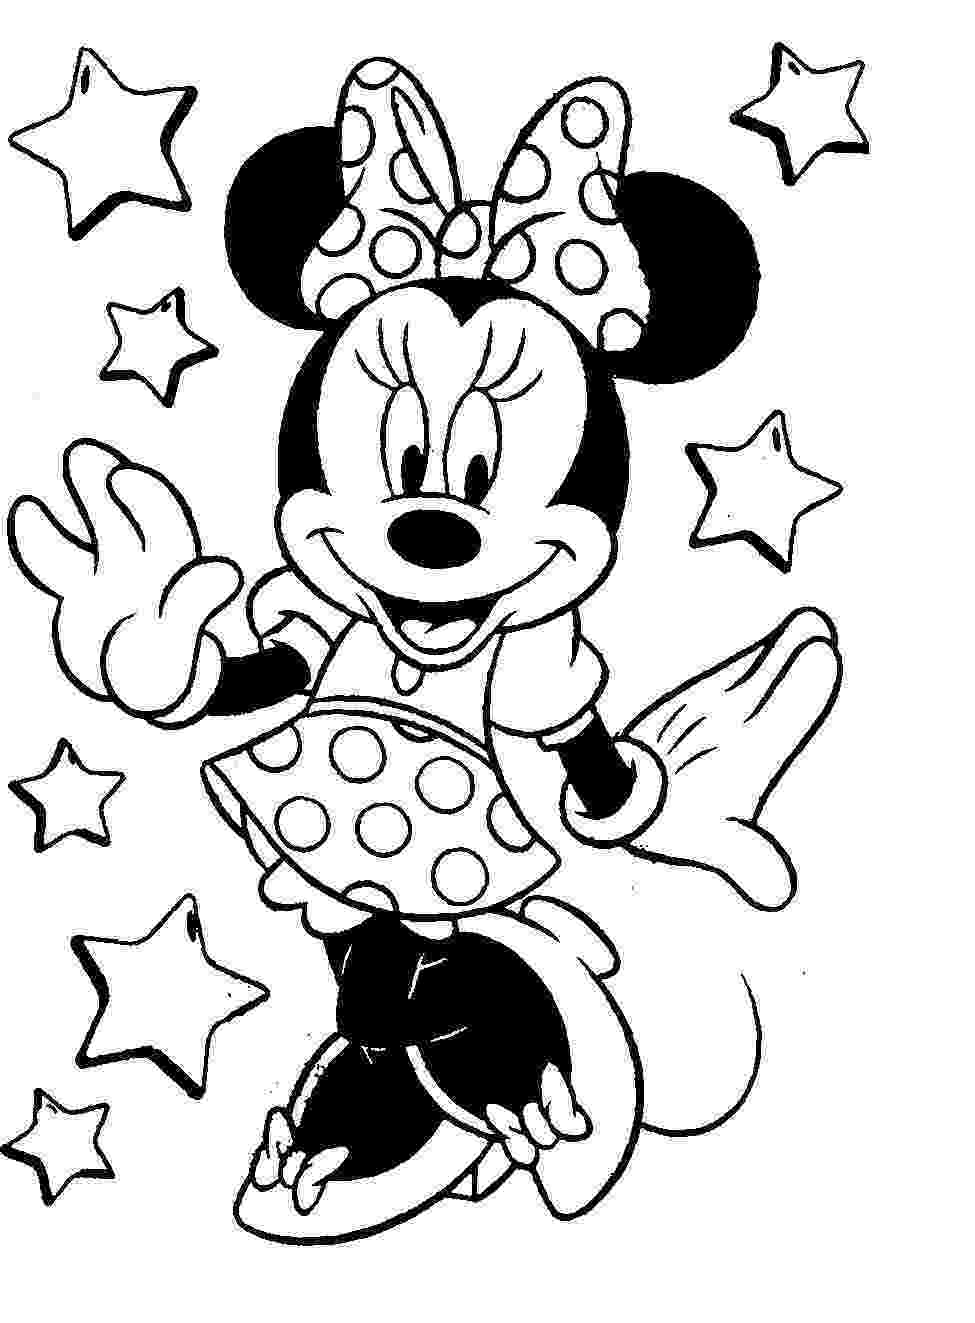 free printable mickey and minnie mouse coloring pages 76 best mickey mouse minnie coloring pages images on and free printable minnie mickey coloring pages mouse